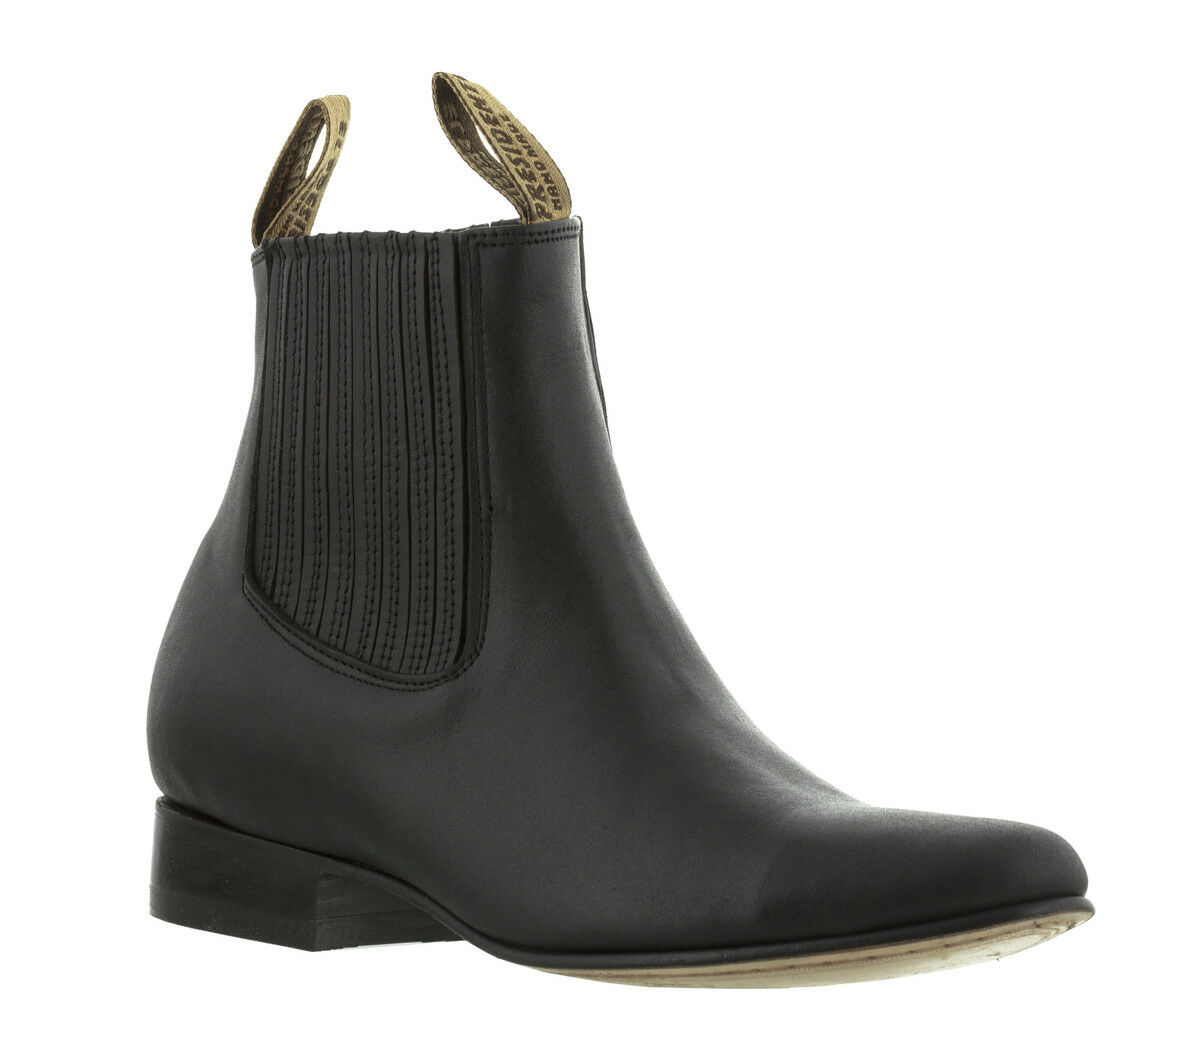 Mens Black Smooth Leather Ankle Boots Round Toe Pull On Dress Rodeo Cowboy New